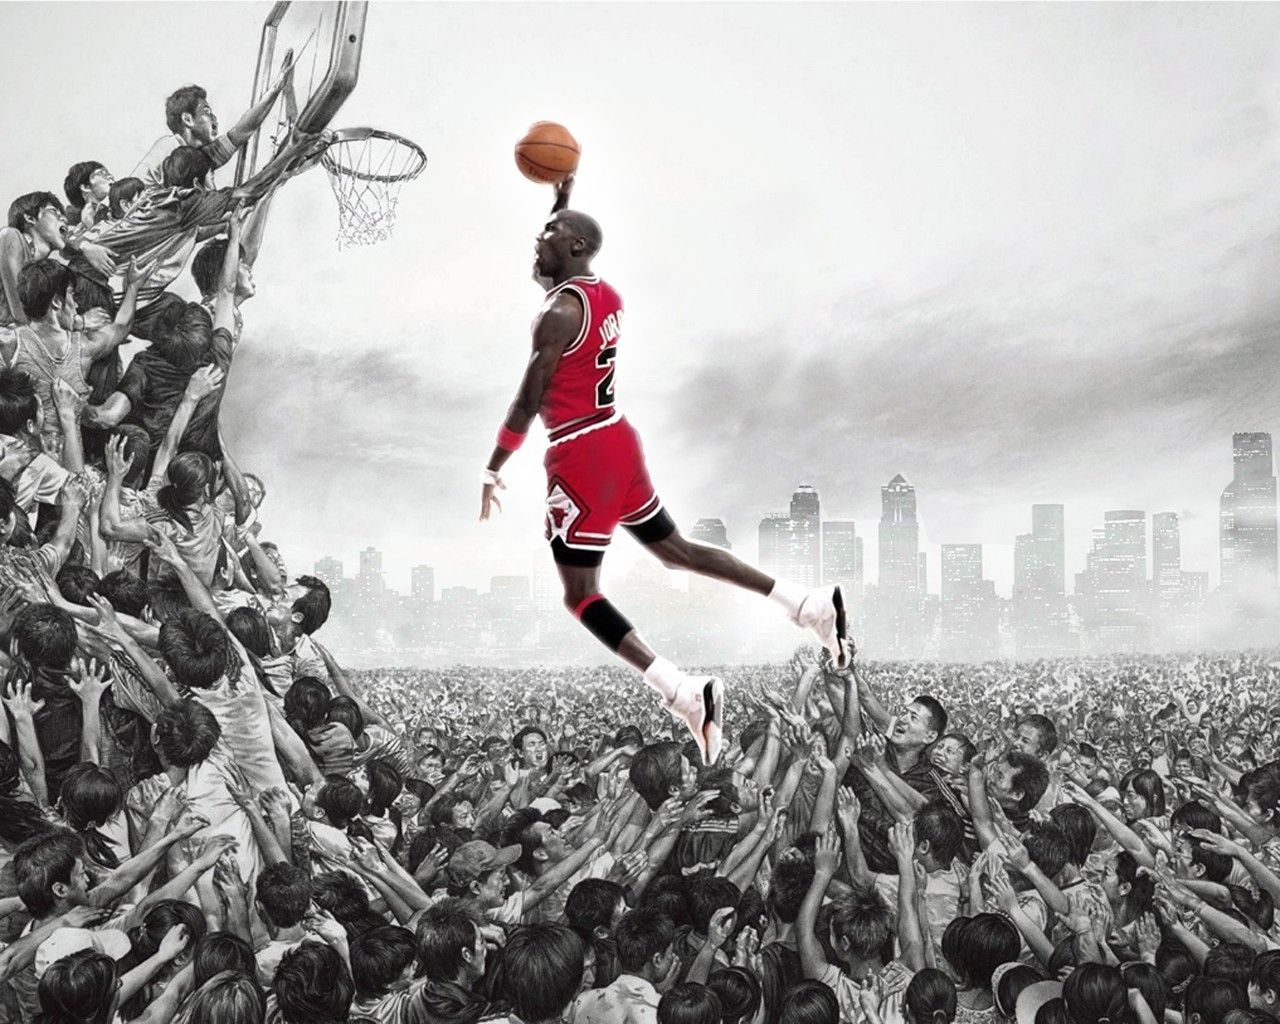 Cool Basketball Wallpapers Wallpaper for Mobile